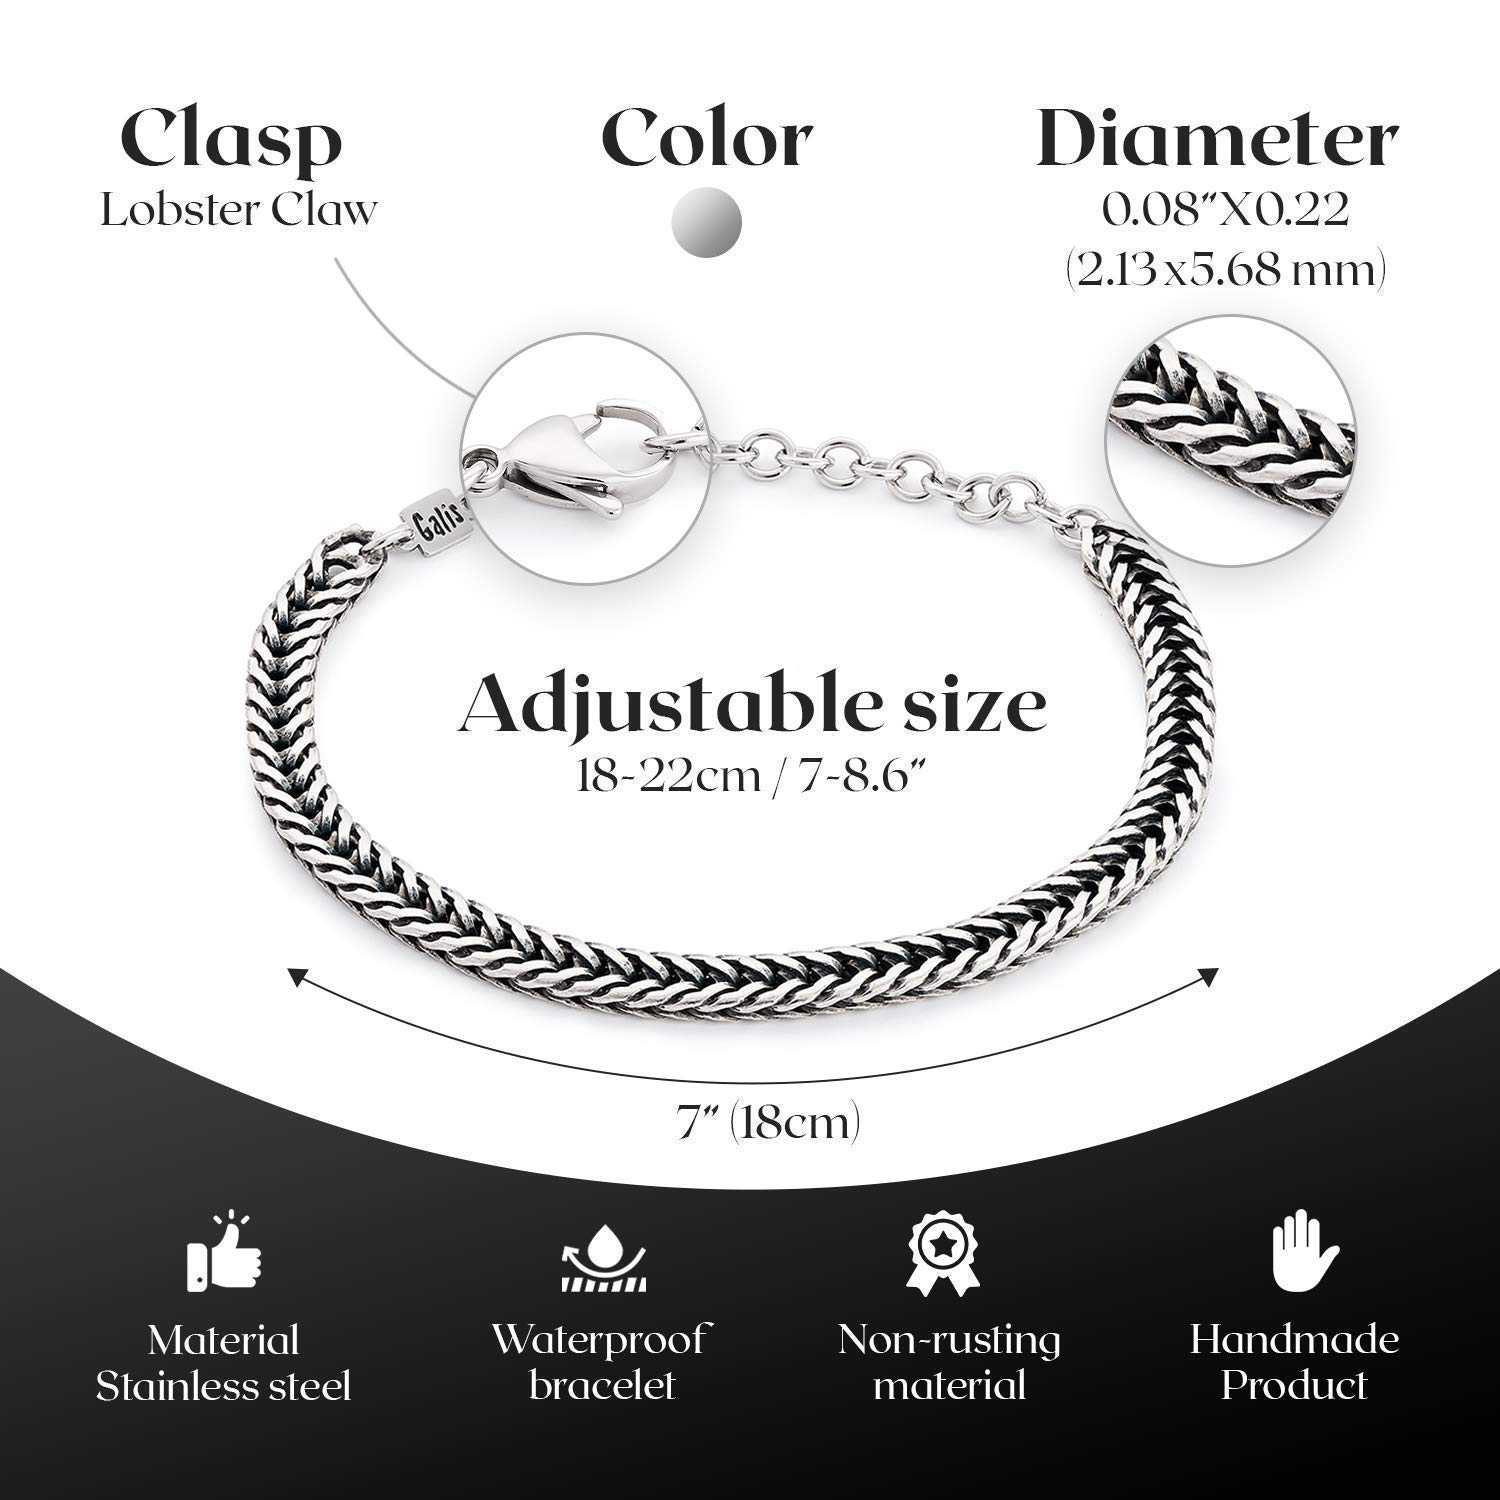 """Handmade Cuff Chain Bracelet For Men Made Of Stainless Steel By Galis Jewelry - Silver Bracelet For Men - Cuff bracelet For men - Jewelry For Men - Fits 7""""-7.75"""" Wirst Sizes"""